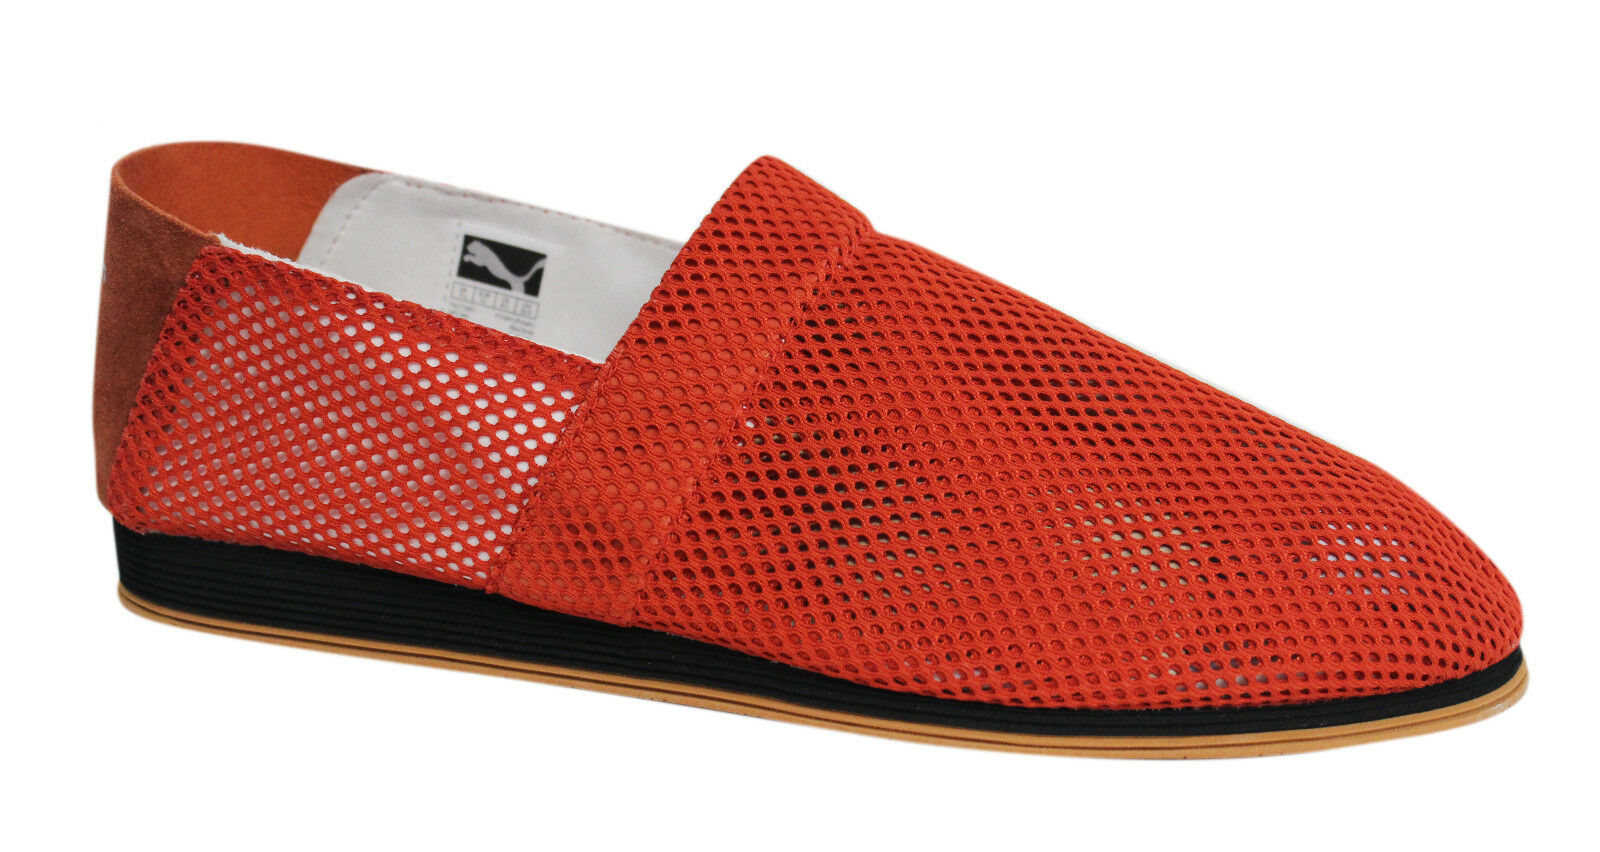 PUMA HUSSEIN CHALAYAN Burnt 354478 Orange Netz Herren Espadrille 354478 Burnt 08 U5 685e98